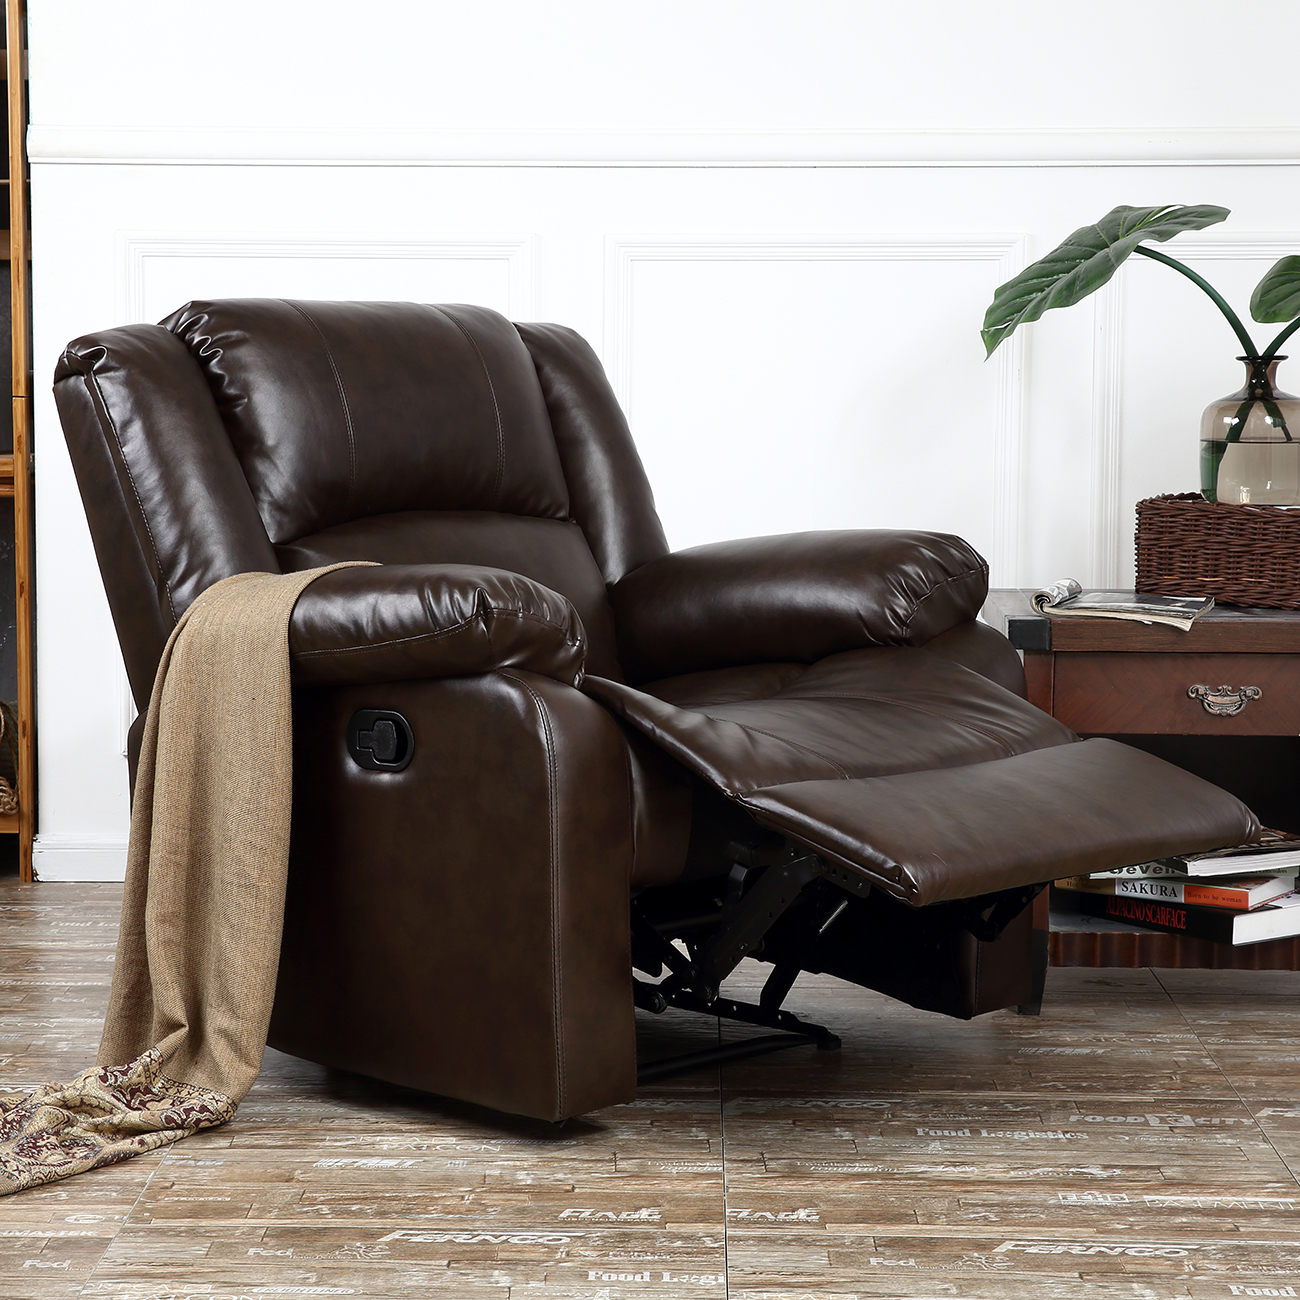 Details about Recliner Chairs For Living Room Dark Brown / Black Leather  Upholstered Furniture